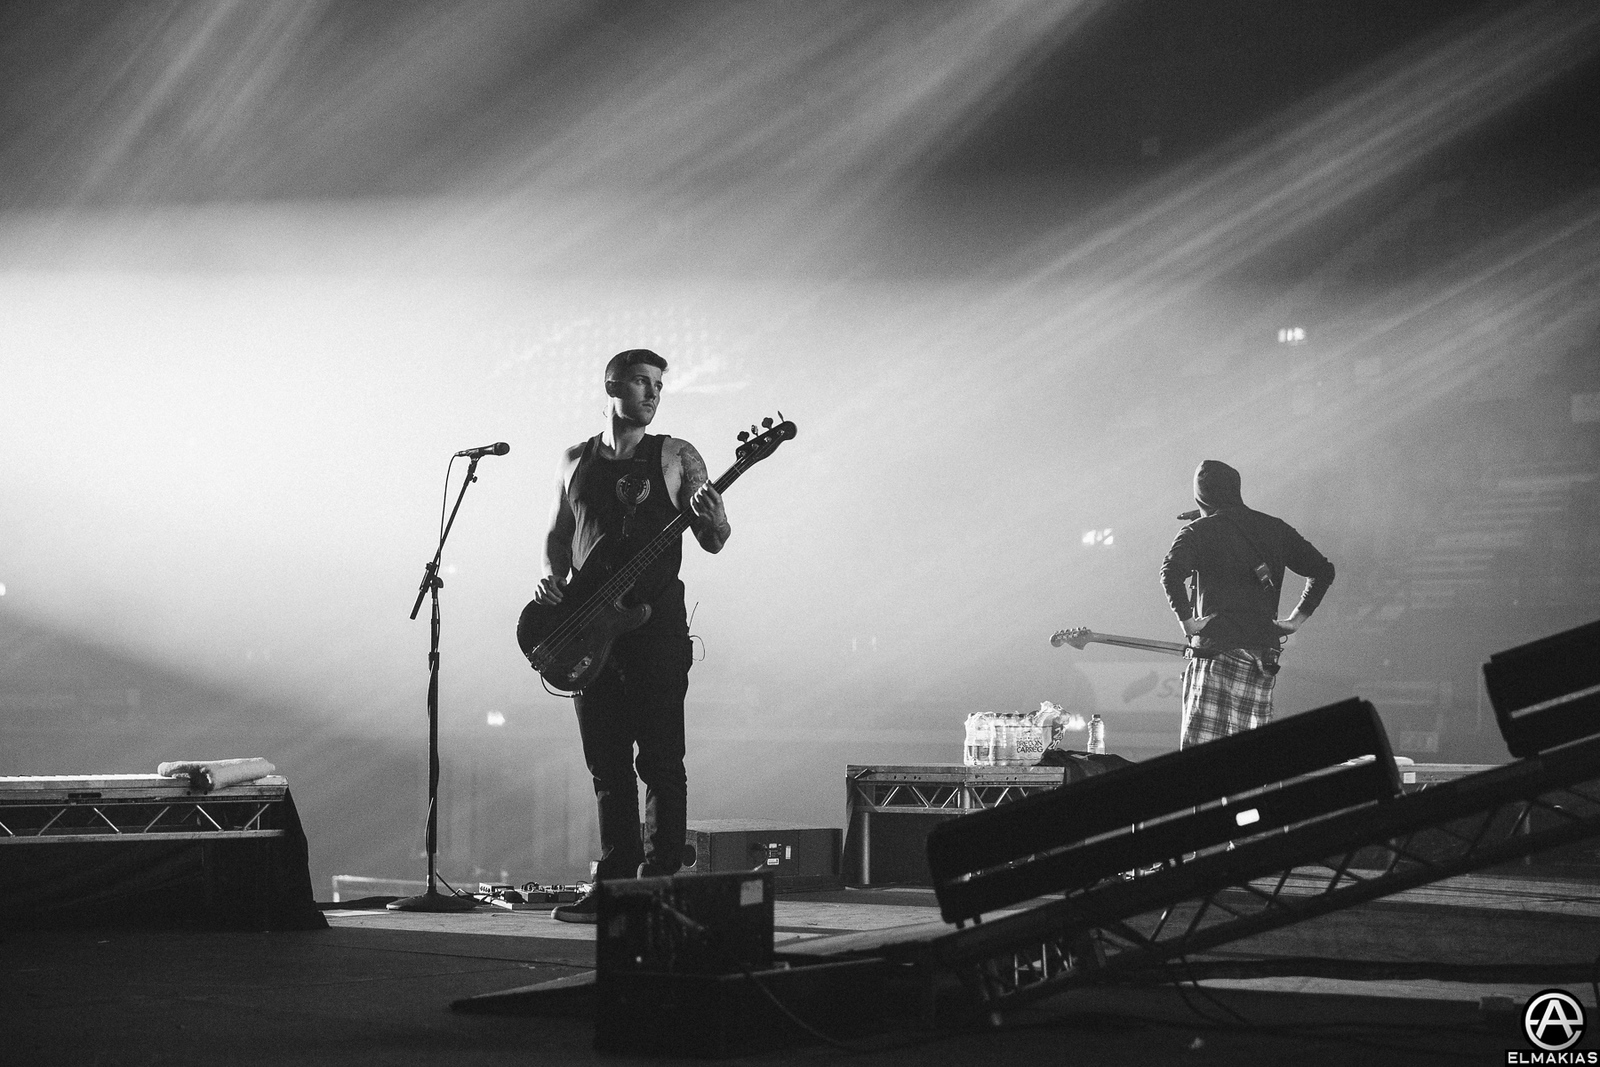 Zack Merrick of All Time Low sound checking at Wembley Arena